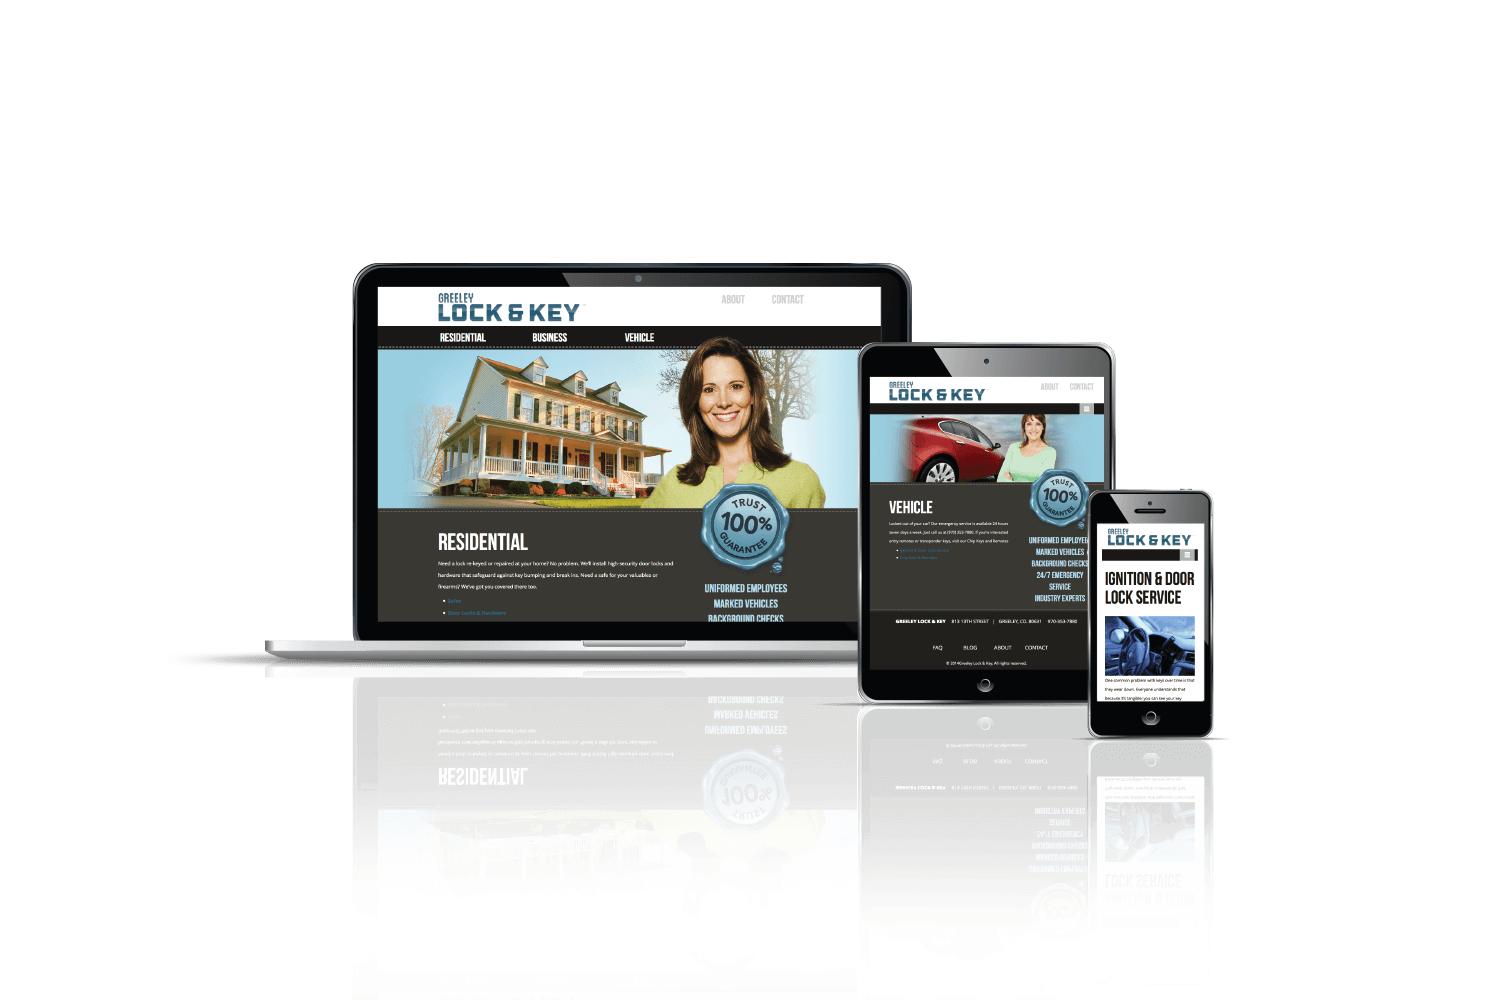 greeley-lock-and-key-website-design